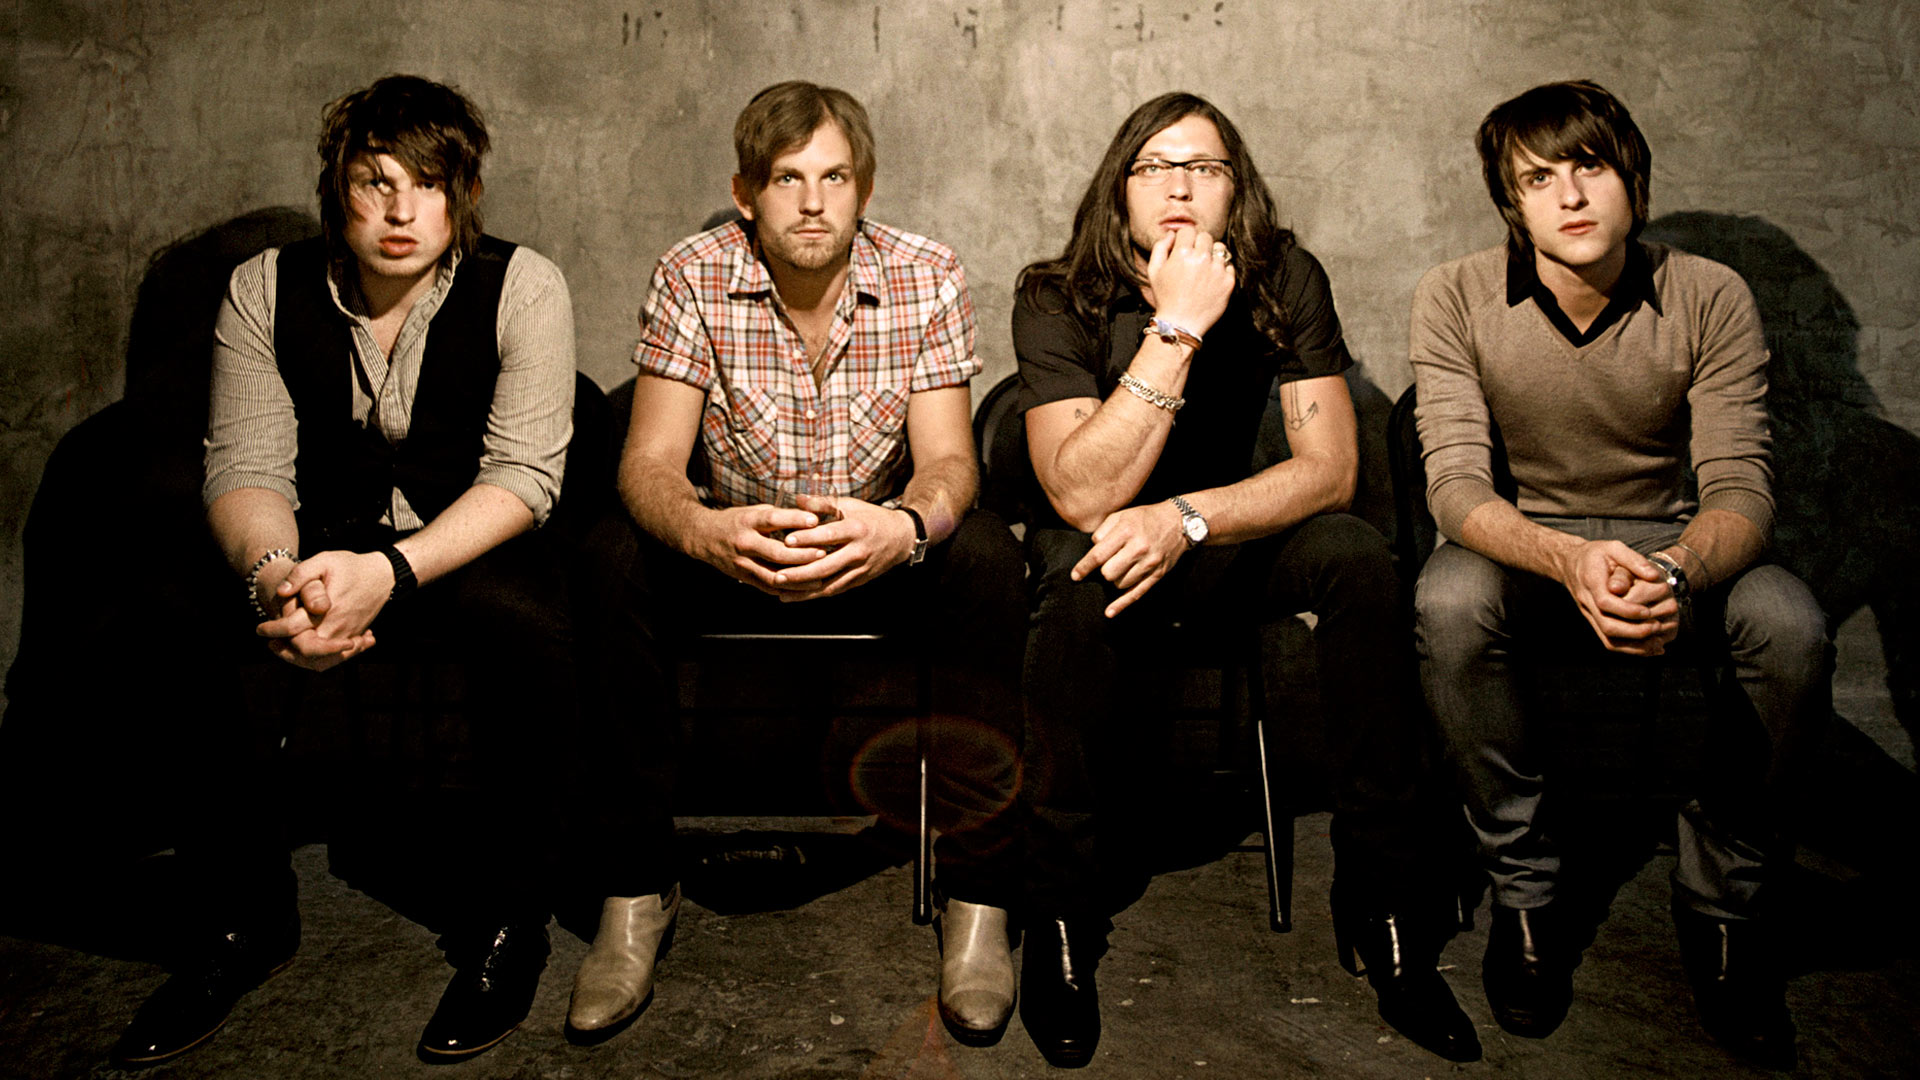 kings-of-leon-4dc9b4d7a8e2b.jpg